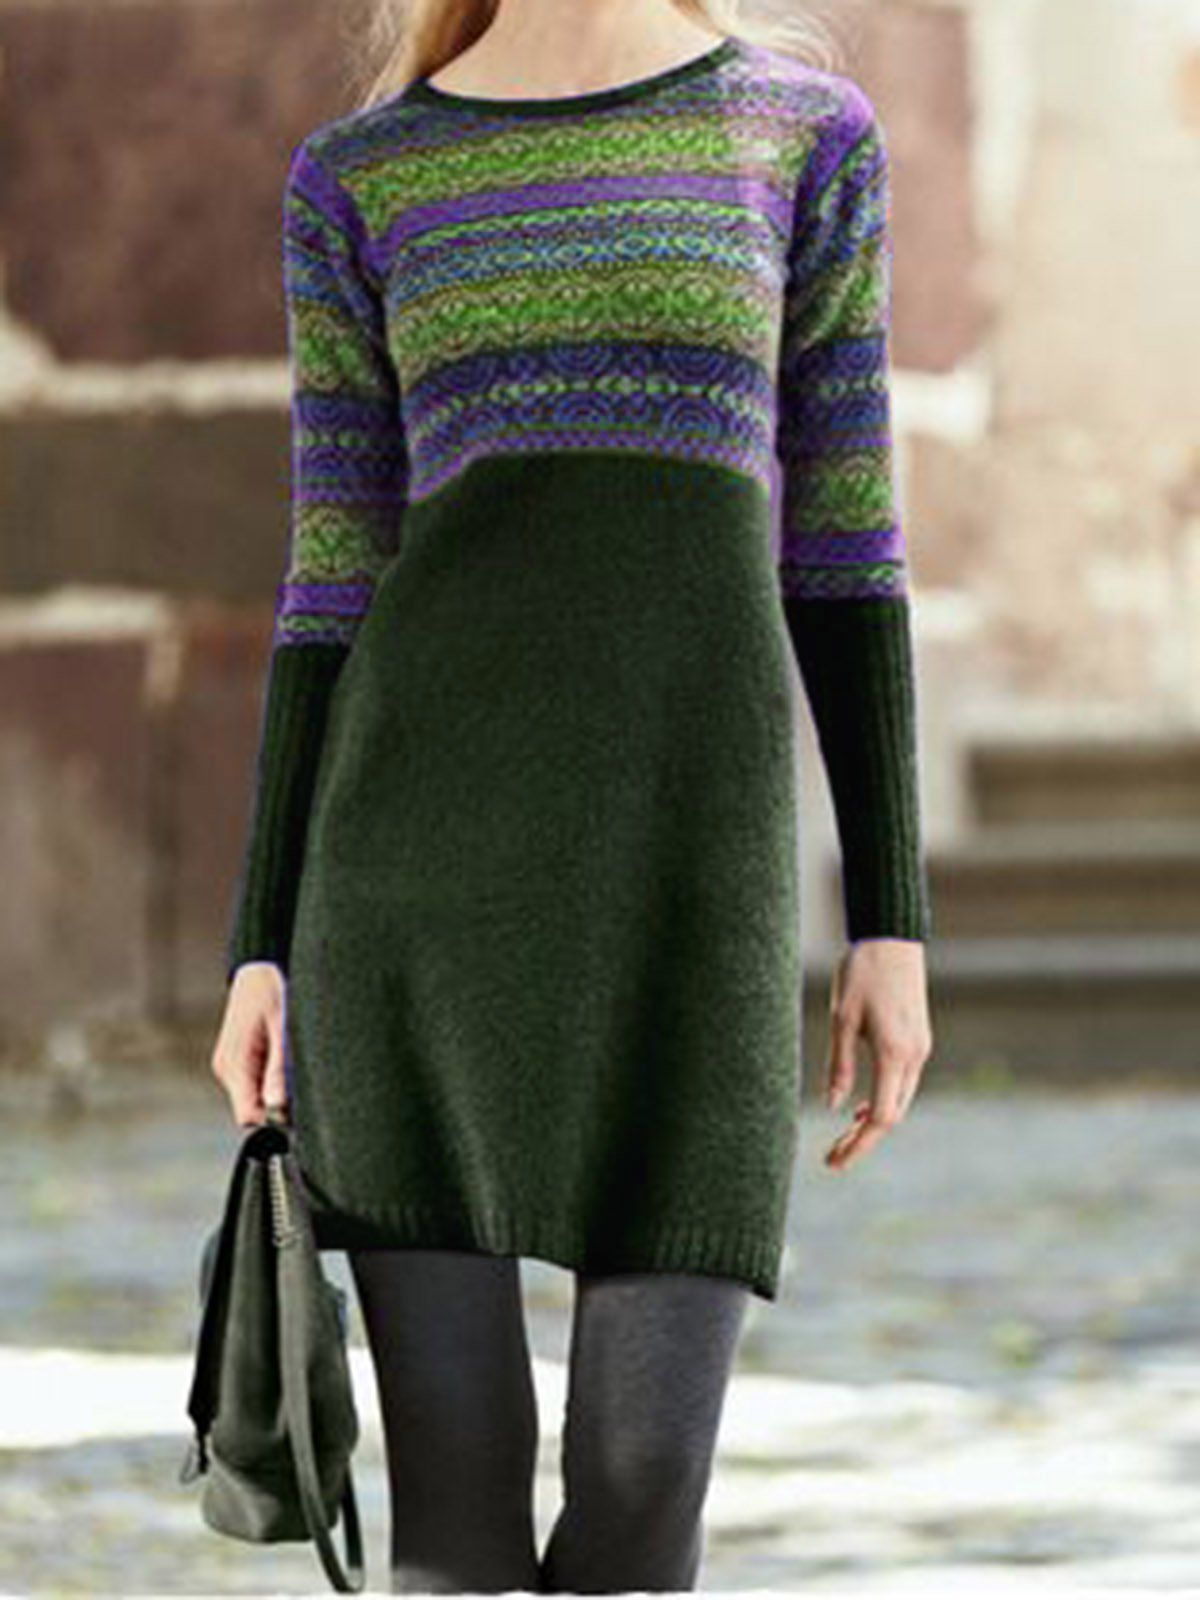 SPU: E09DR95927E Material: Knitted Style: Vintage Theme: Winter,Spring,Fall Color: Deep Green,Deep Blue,Coffee,Purple,Black Size: S,M,L,XL,XXL,3XL,4XL,5XL Bust (cm): S:98, M:103, L:108, XL:113, XXL:118, 3XL:123, 4XL:128, 5XL:133 Size Chart Size Bust cm inch S 98 38.6 M 103 40.6 L 108 42.5 XL 113 44.5 XXL 118 46.5 3XL 123 48.4 4XL 128 50.4 5XL 133 52.4. Womens Fall Clothing Black Women Dresses Vintage Dresses, Deep Green / S